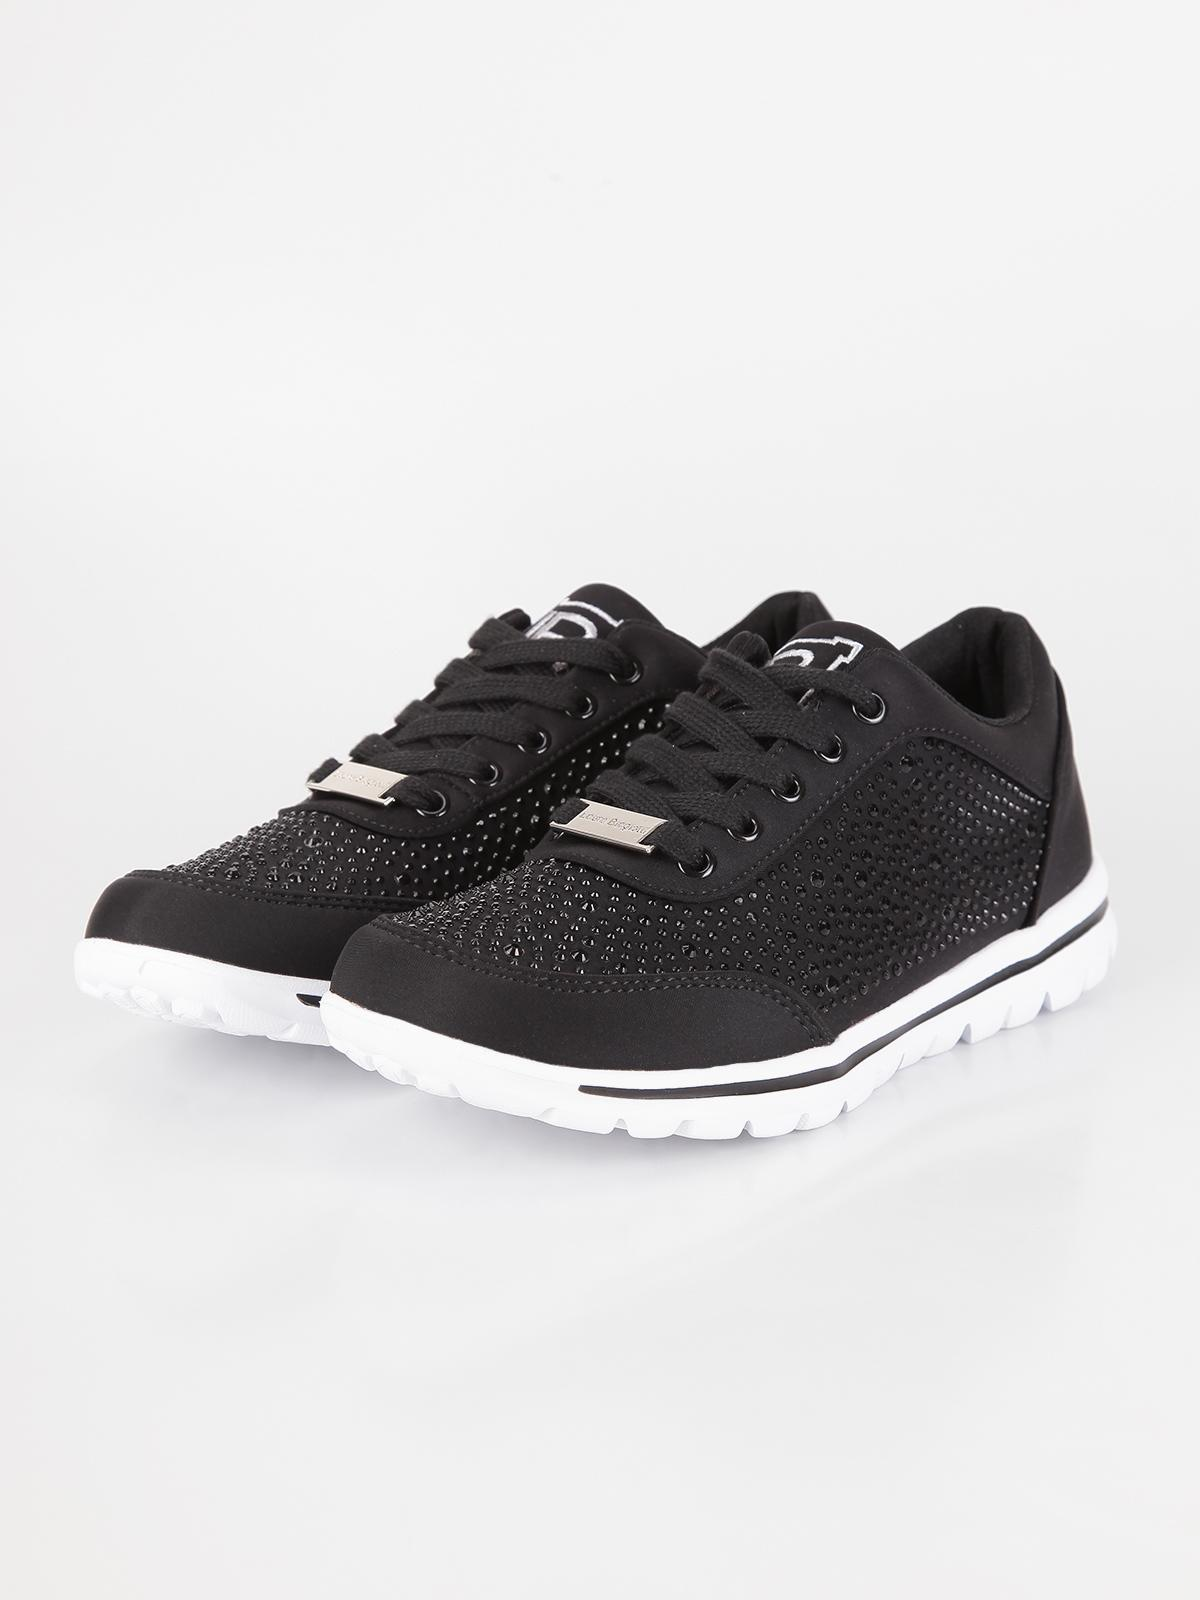 competitive price ab08b 43ef9 Sneakers estive con strass - Nero laura biagiotti | MecShopping